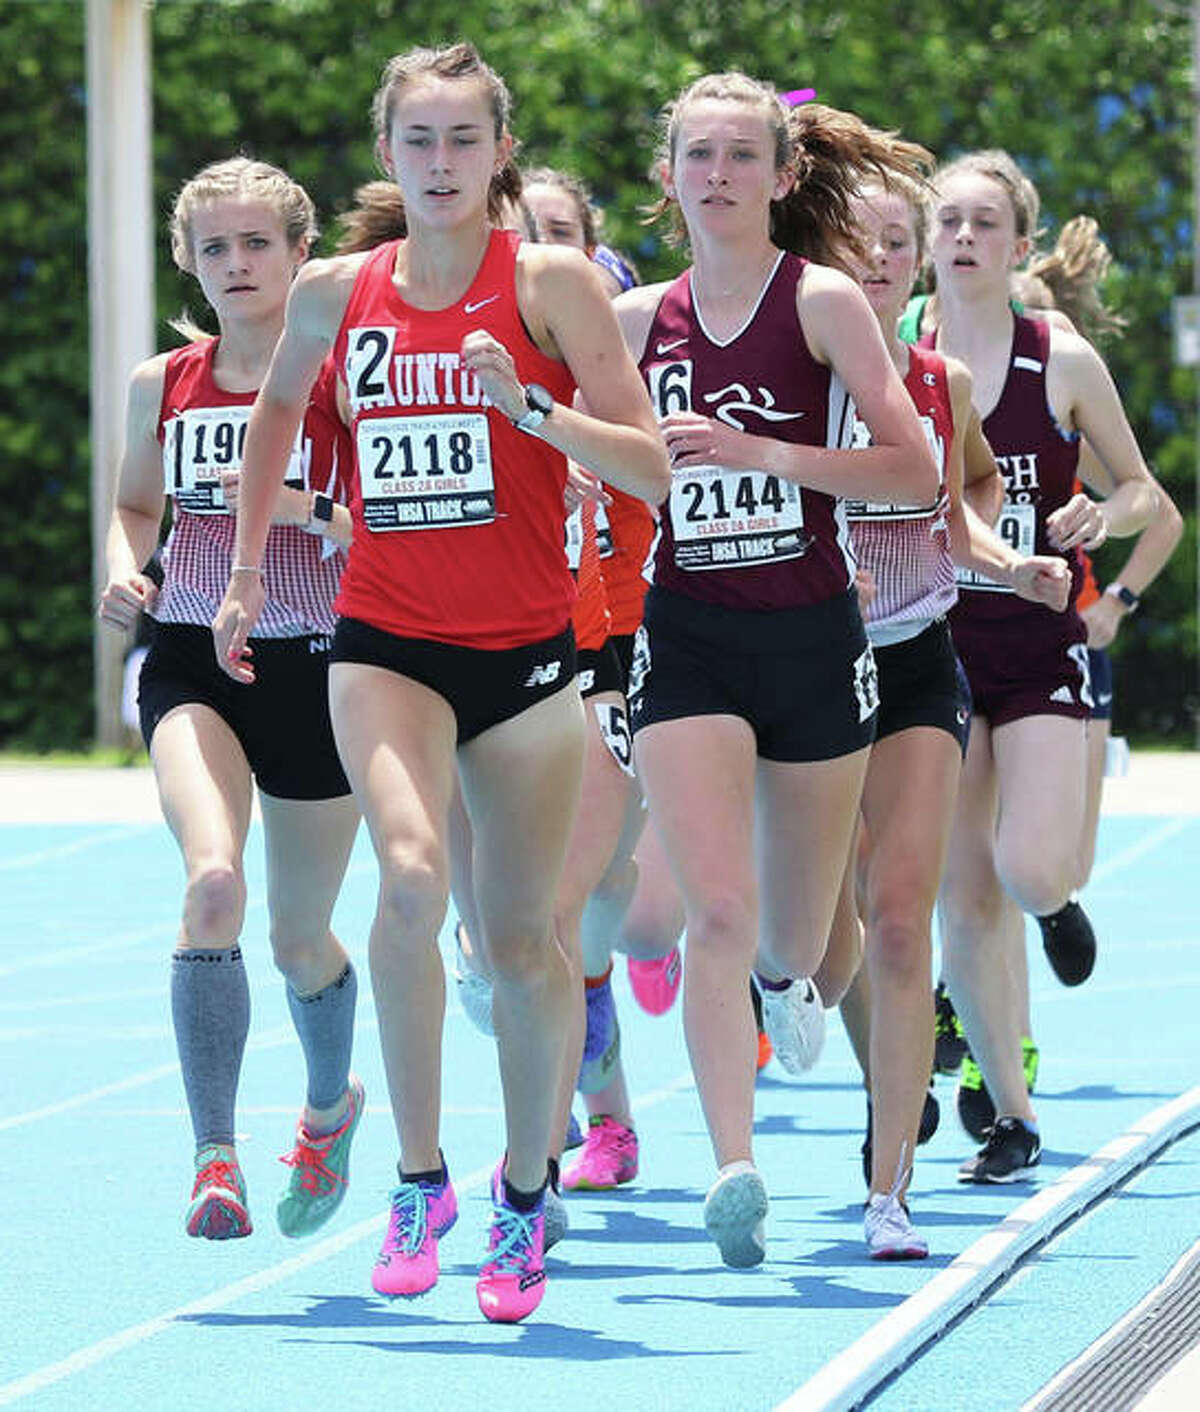 Staunton's Lydia Roller leads a pack of runners early in the 3,200-meters at the 2019 Class 2A girls track state meet at Eastern Illinois University in Charleston. Roller finished fourth in this race and second in the 1,600 as a sophomore. Her junior season was wiped out by COVID-19 concerns, but Roller had reason to celebrate Friday with her commitment to run college track and cross country for the Missouri Tigers.